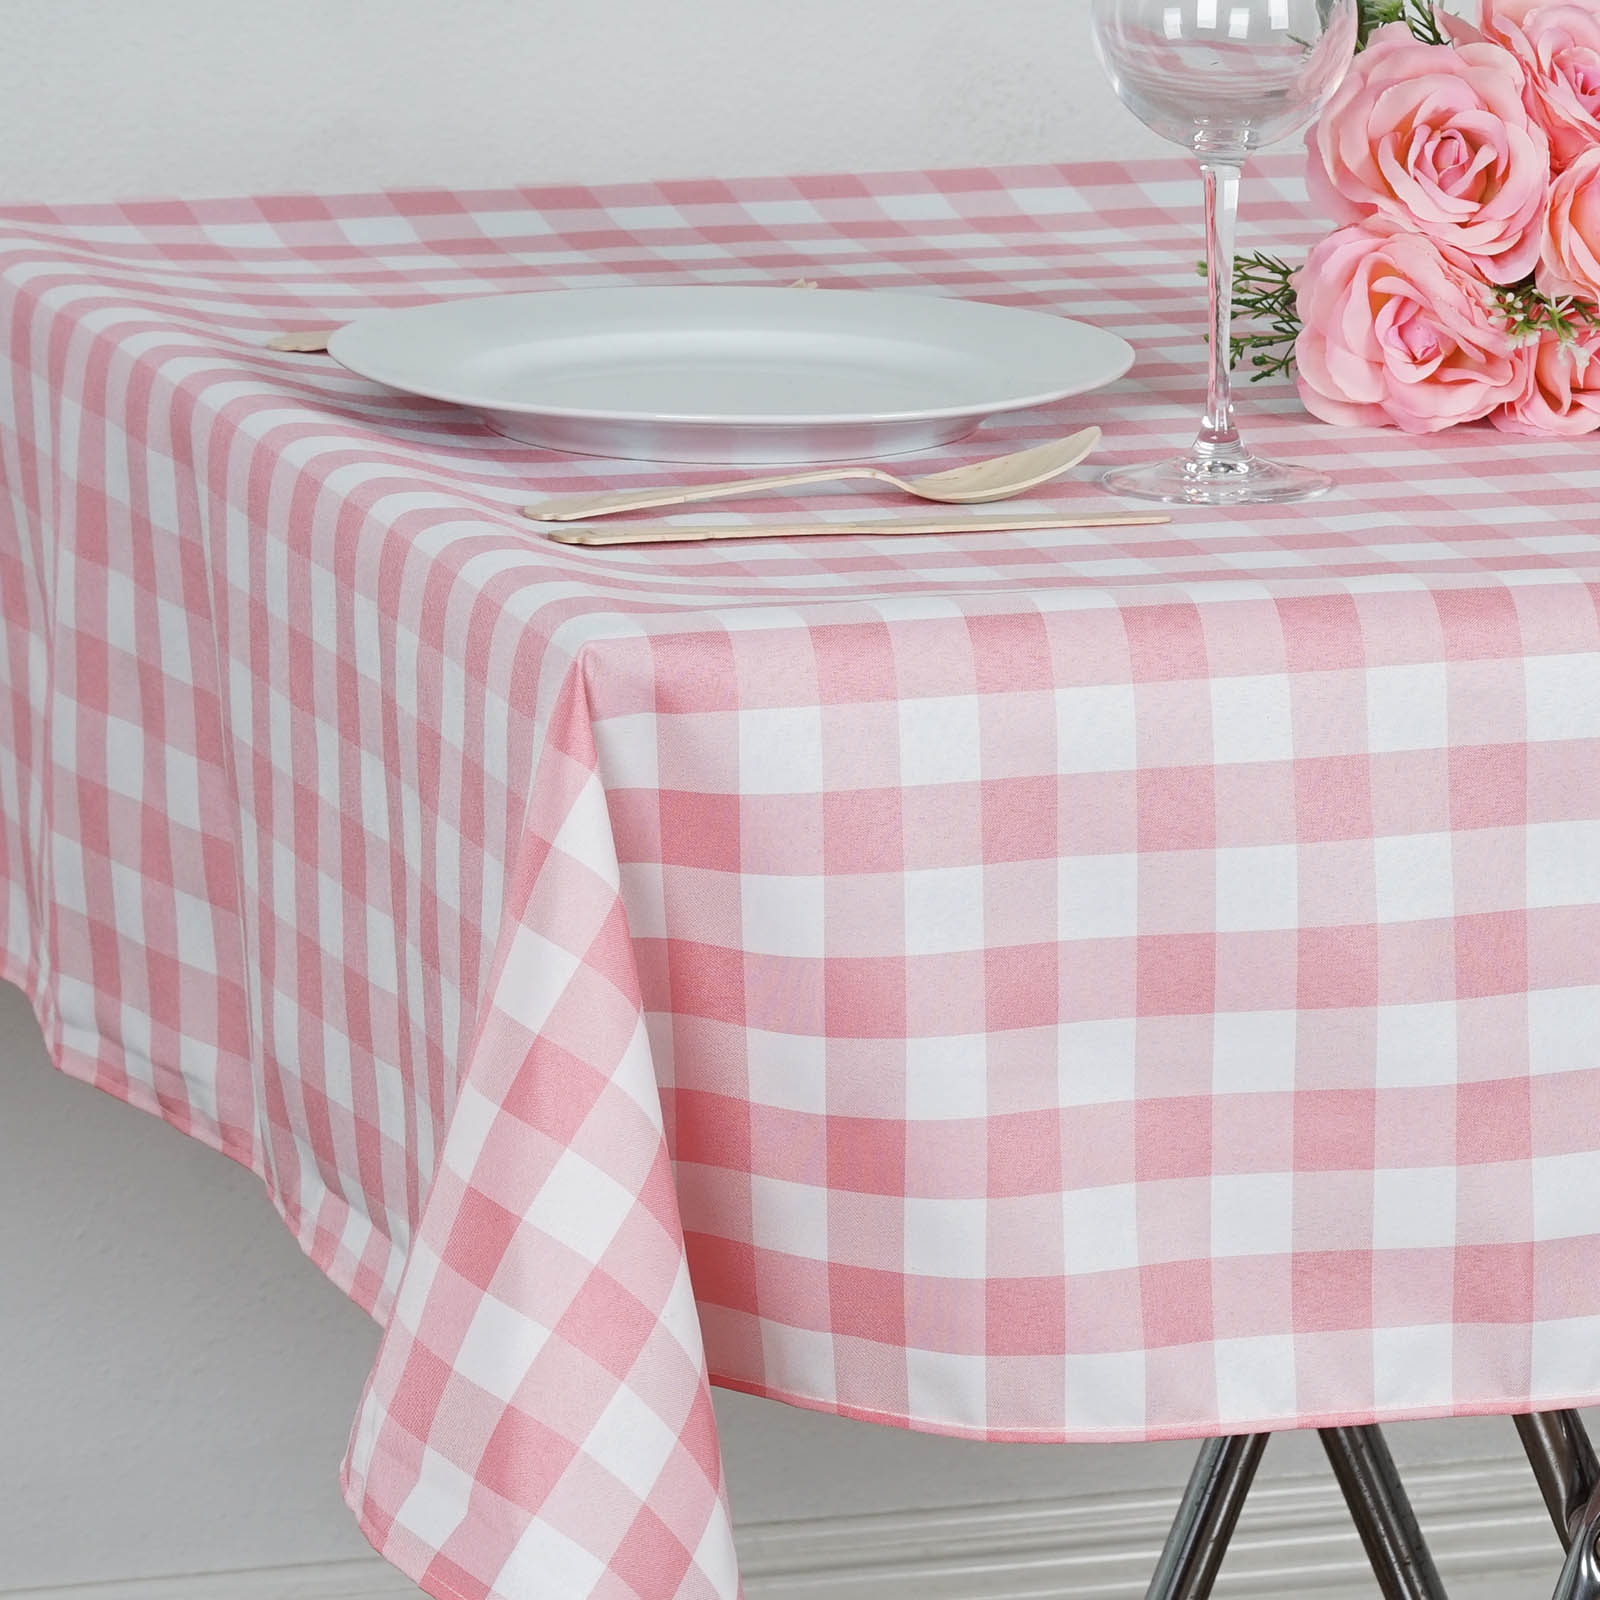 Square Tablecloth Square Checked Gingham Polyester Tablecloth Dinner Wedding